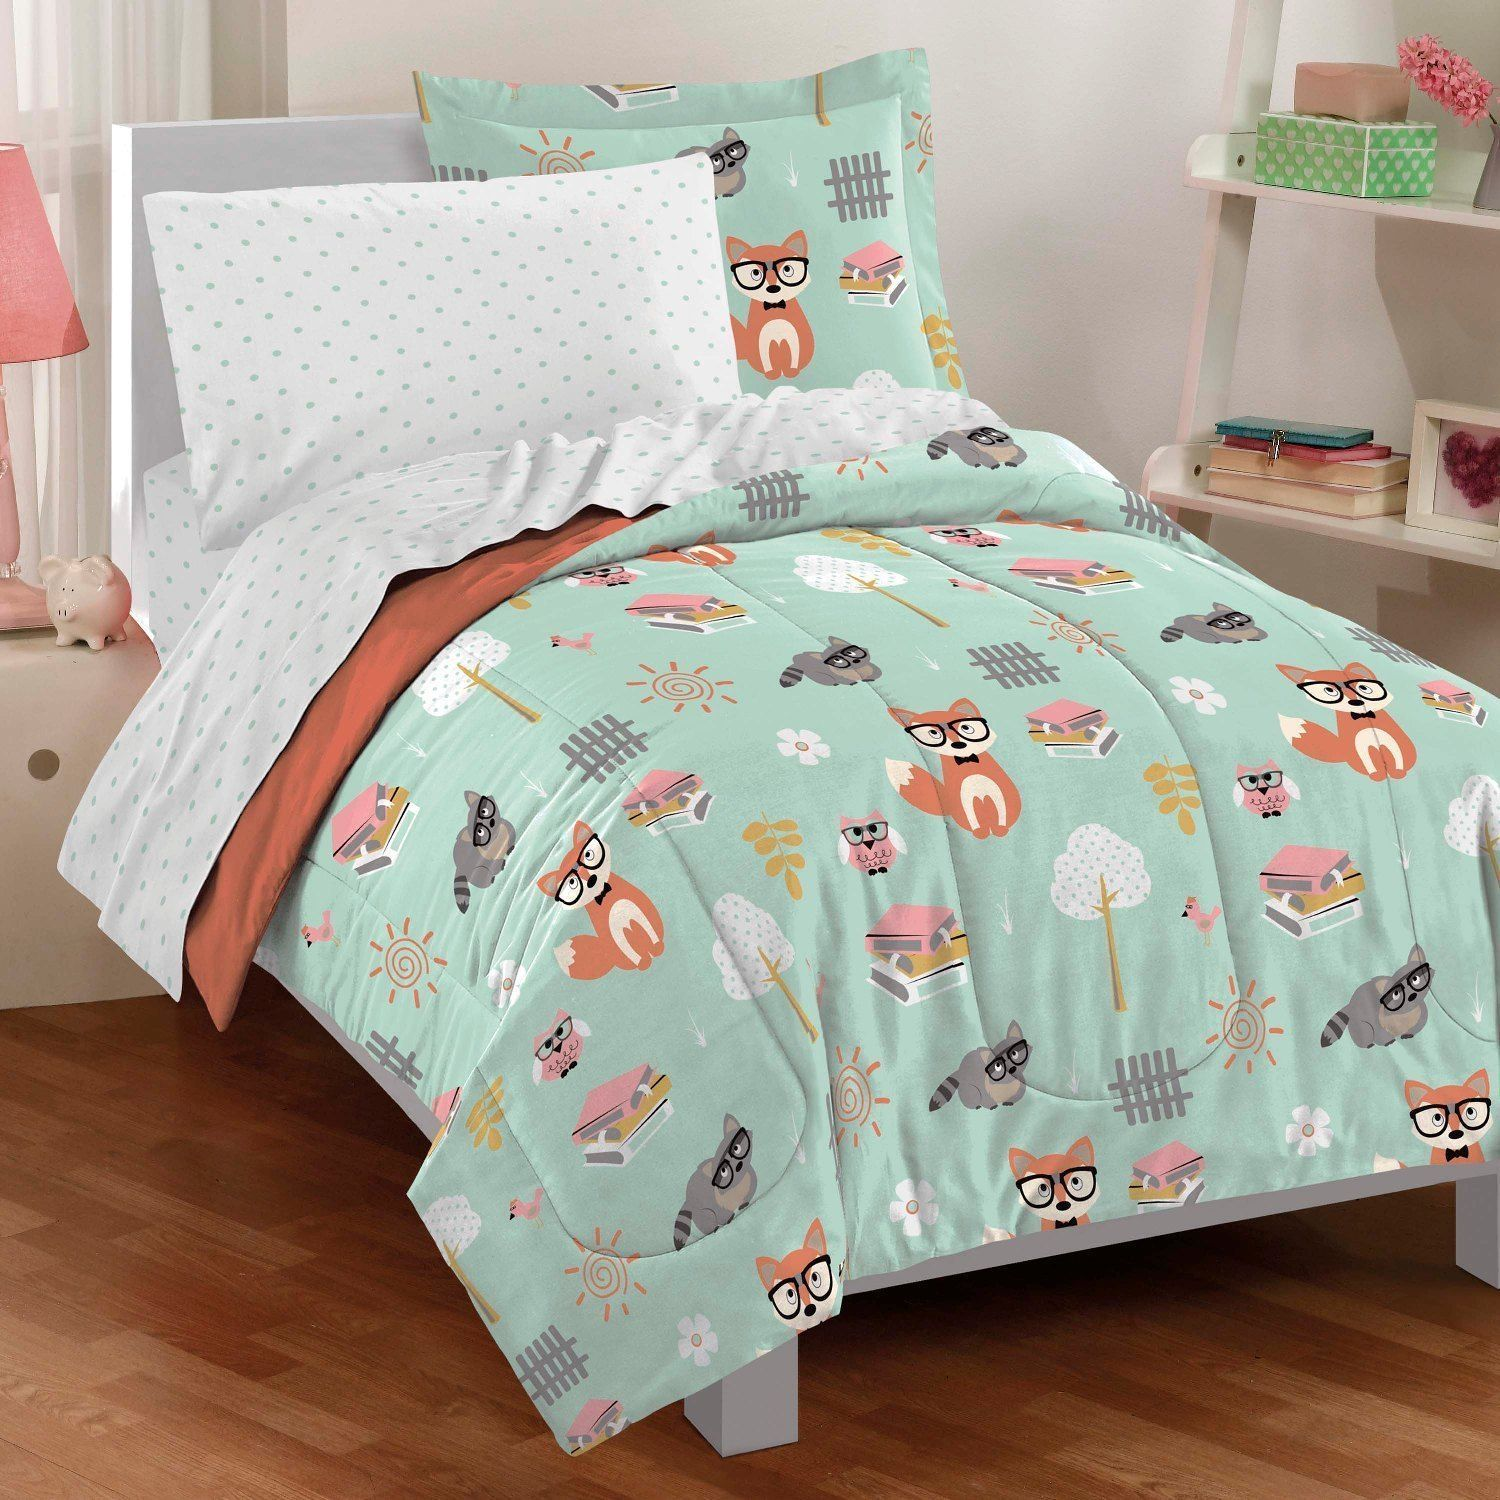 This cute bed in a bag set features woodland animals on a mint